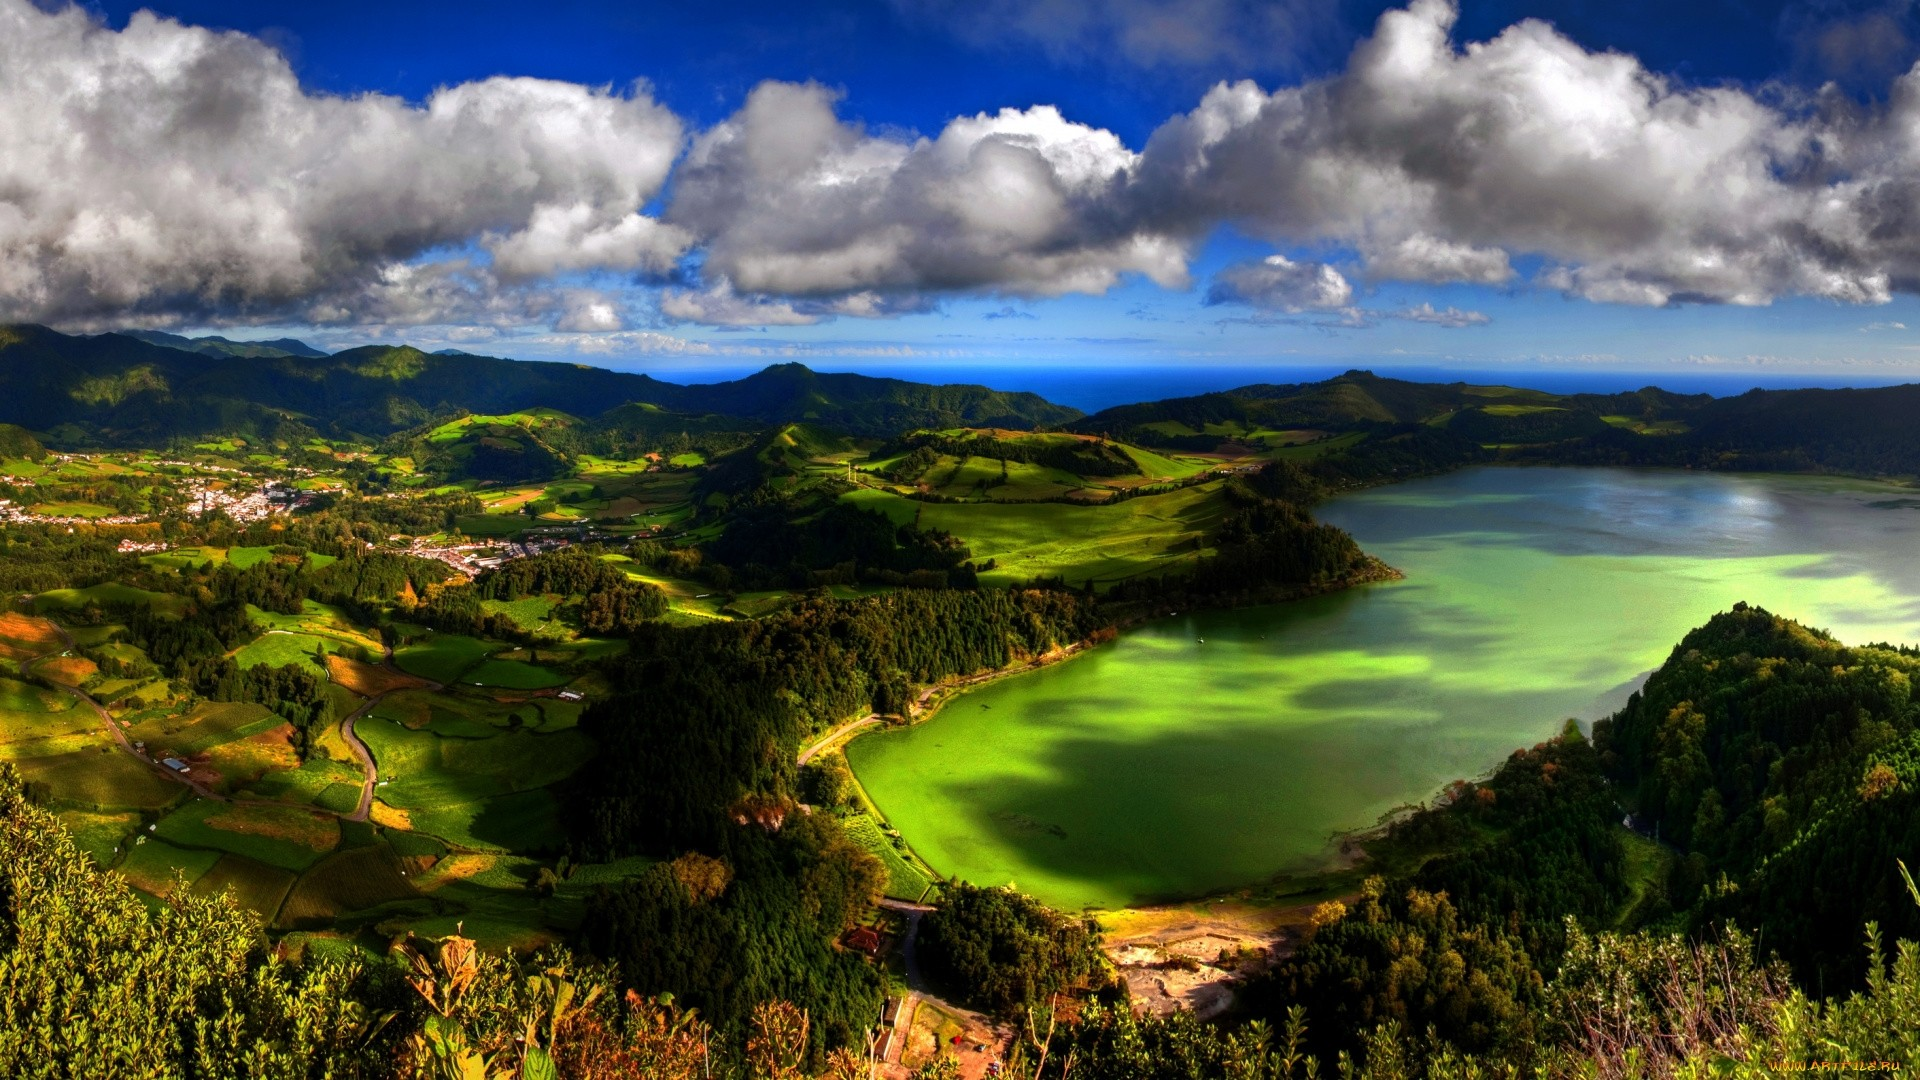 Azores Islands Wallpaper theme